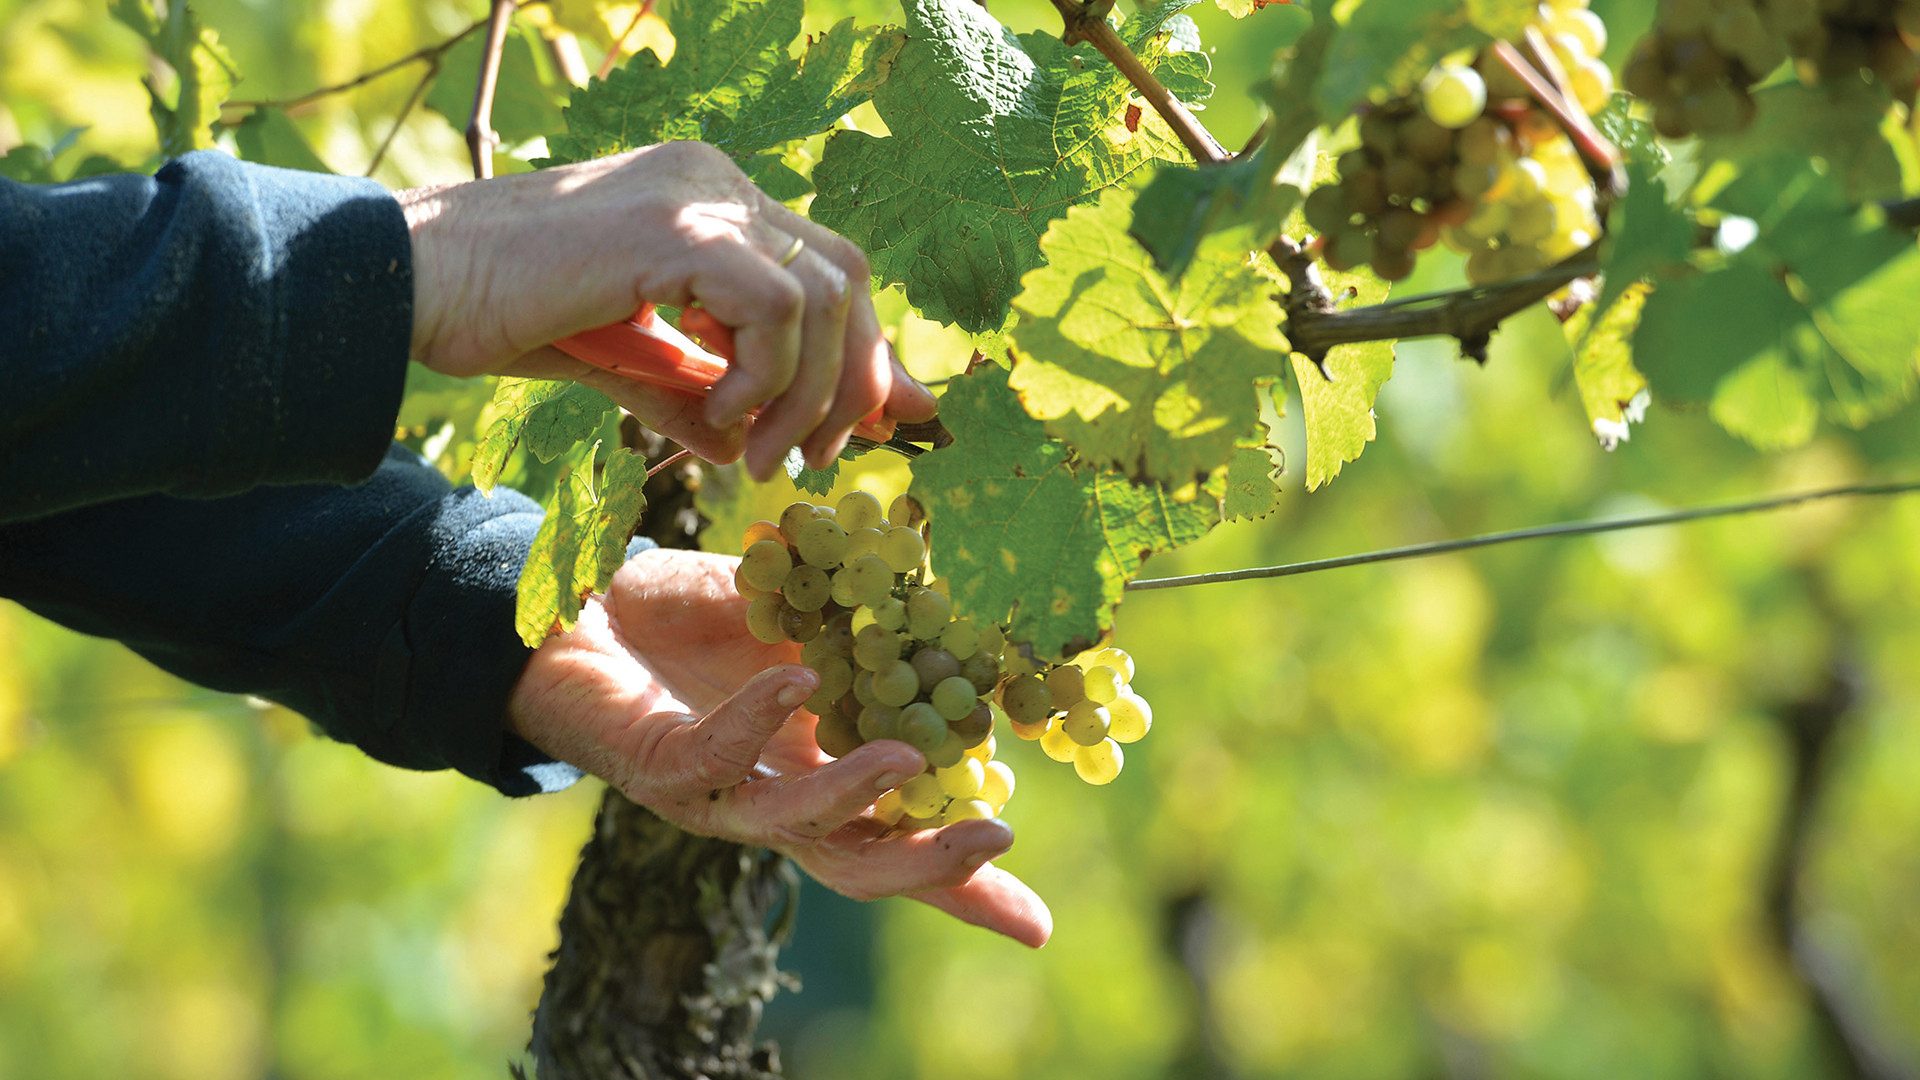 Wines of Germany | Riesling grapes